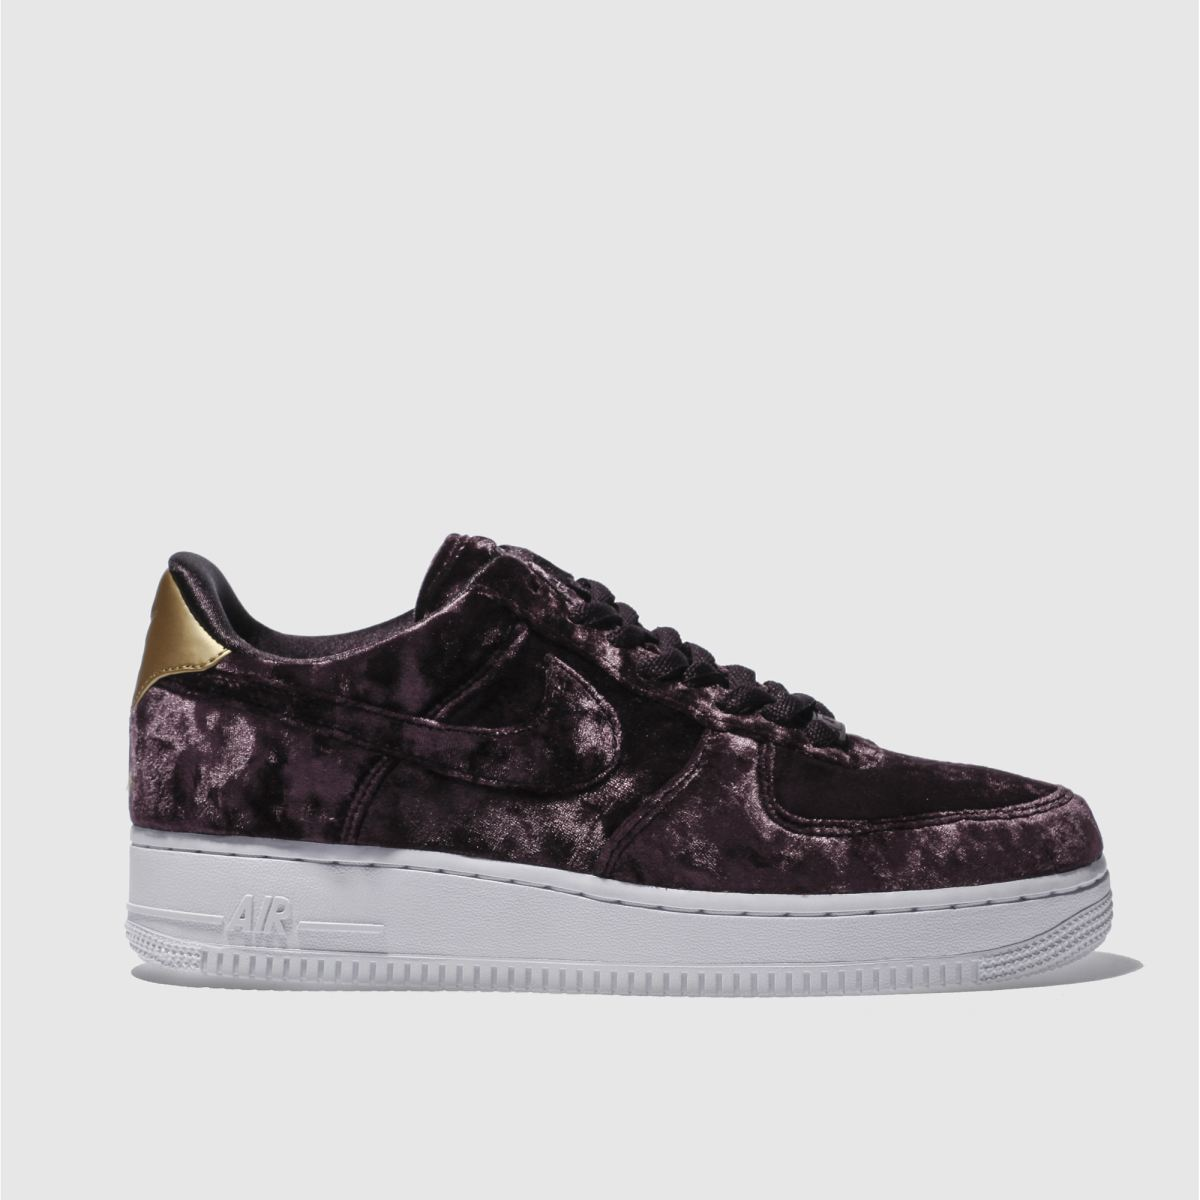 nike dark purple air force 1 low premium trainers